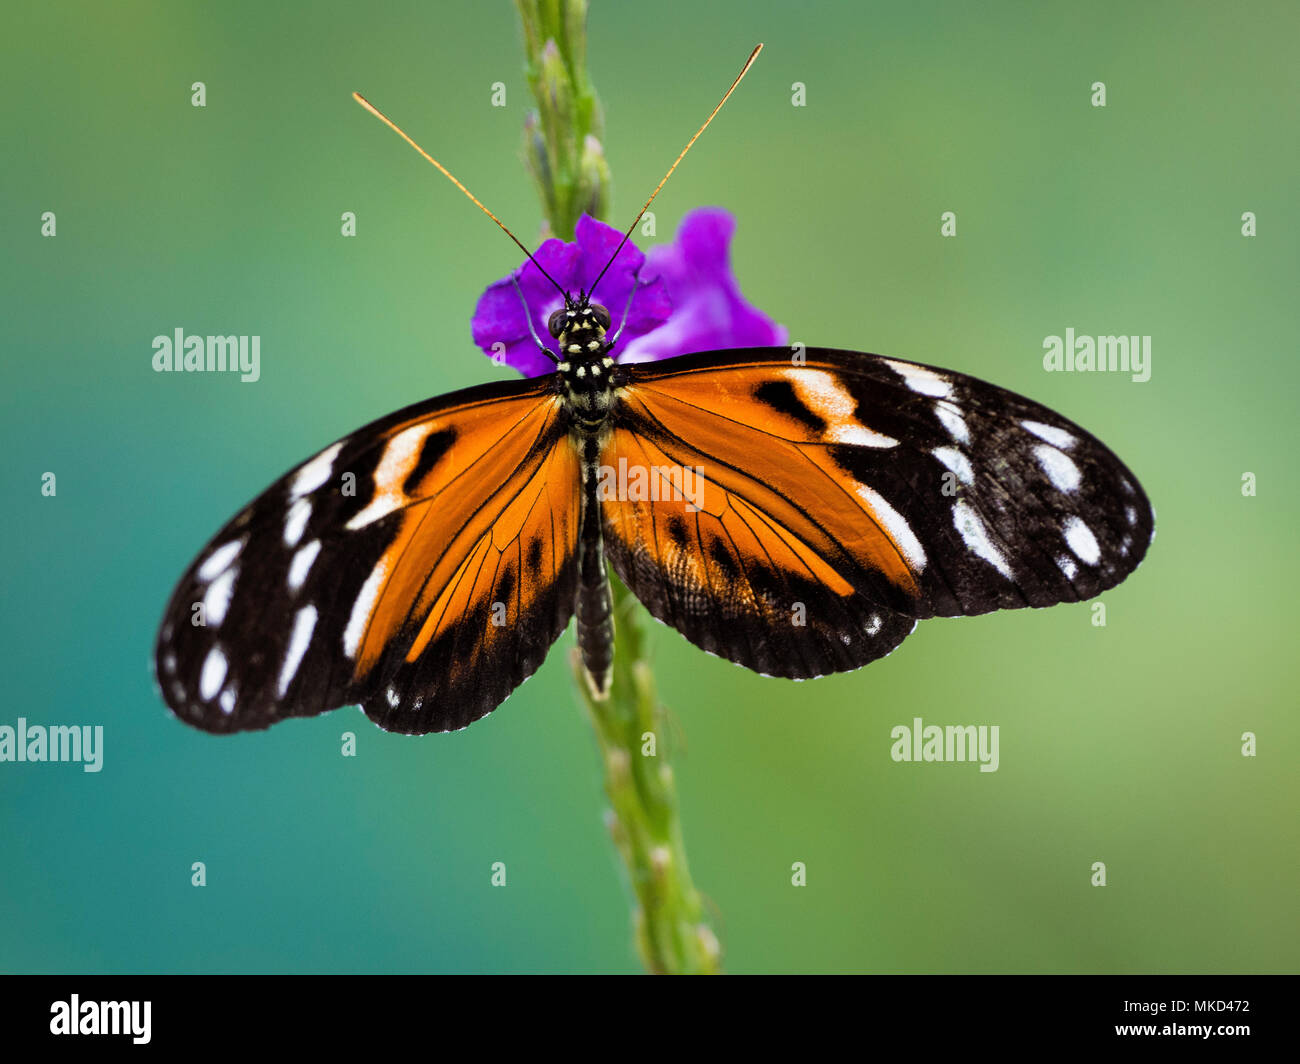 Heliconia spp. butterfly on verbena flower, Gamboa, Panama, february - Stock Image